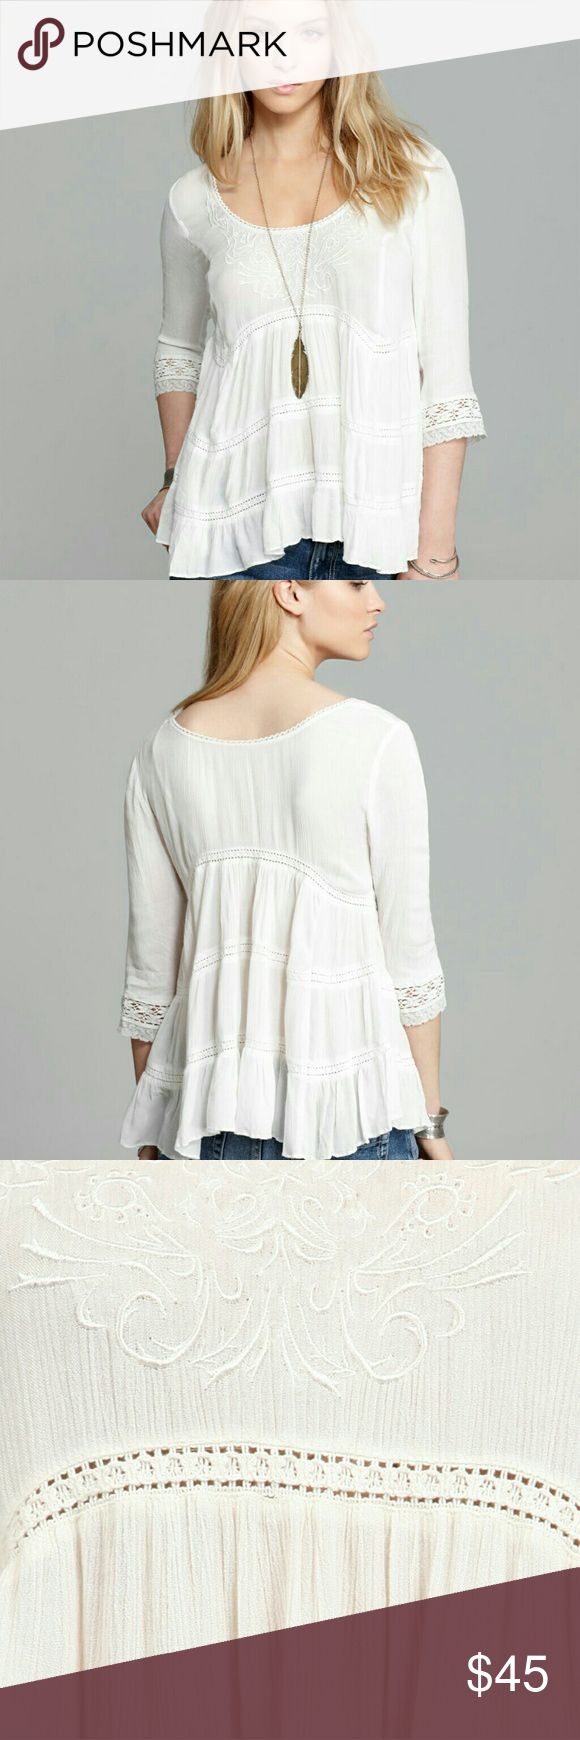 USE THE OFFER BUTTON! Rare Free people tunic Free people Pandora tunic Free people  Tops